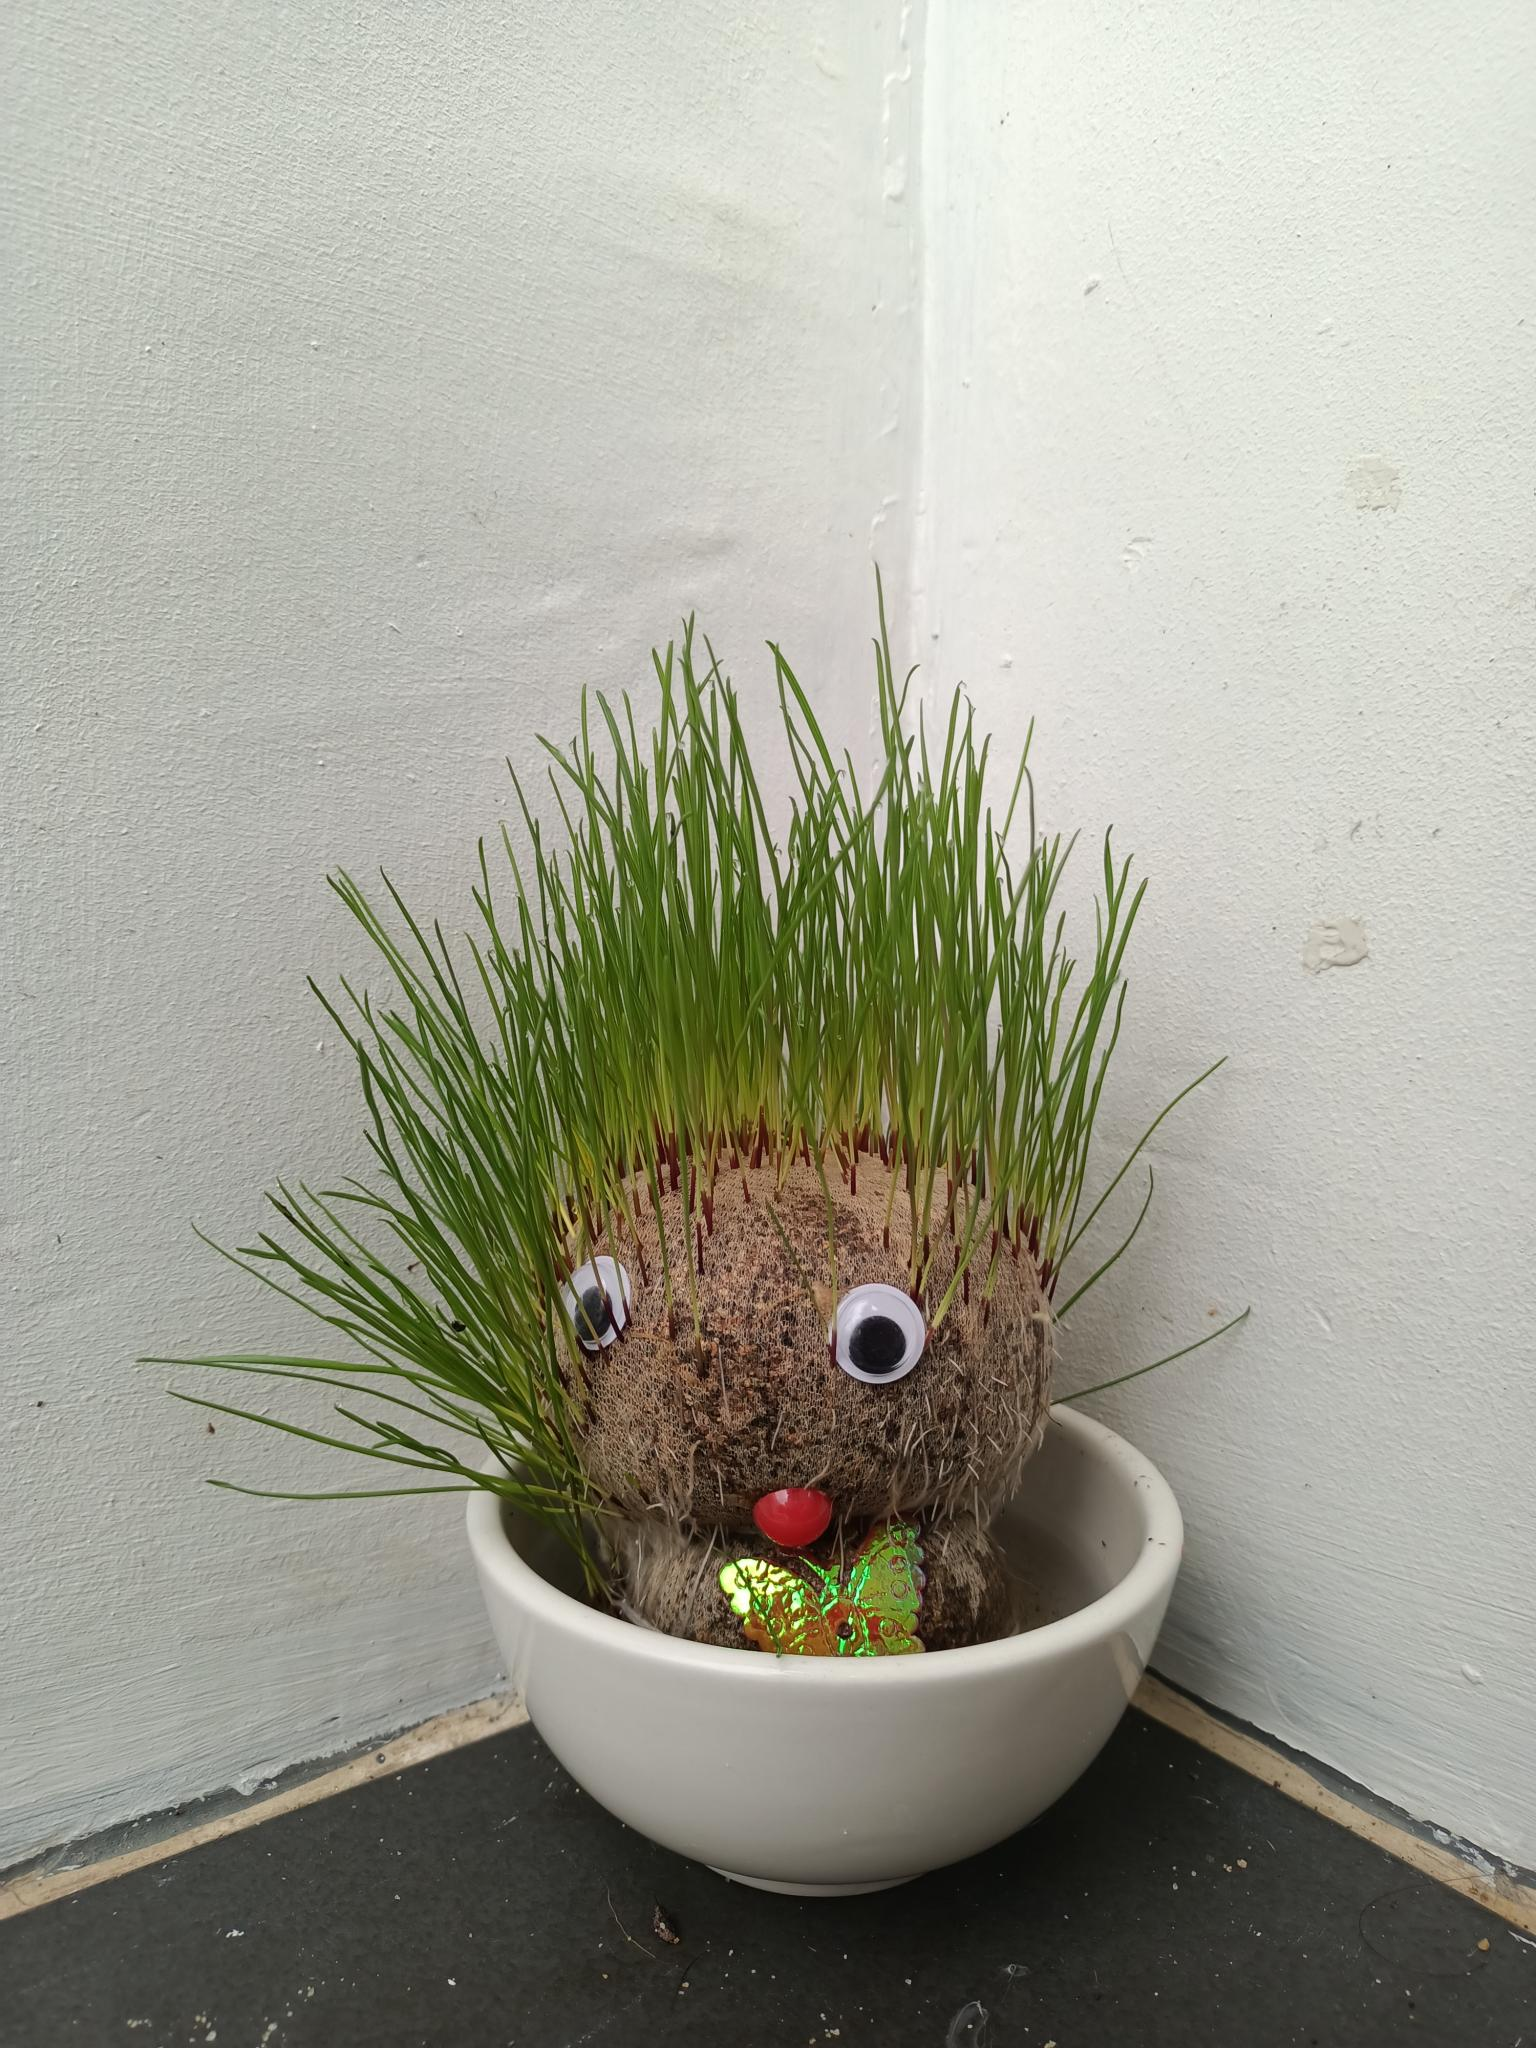 Watch Grass Grow With Armstrong-img20210908071815-jpg